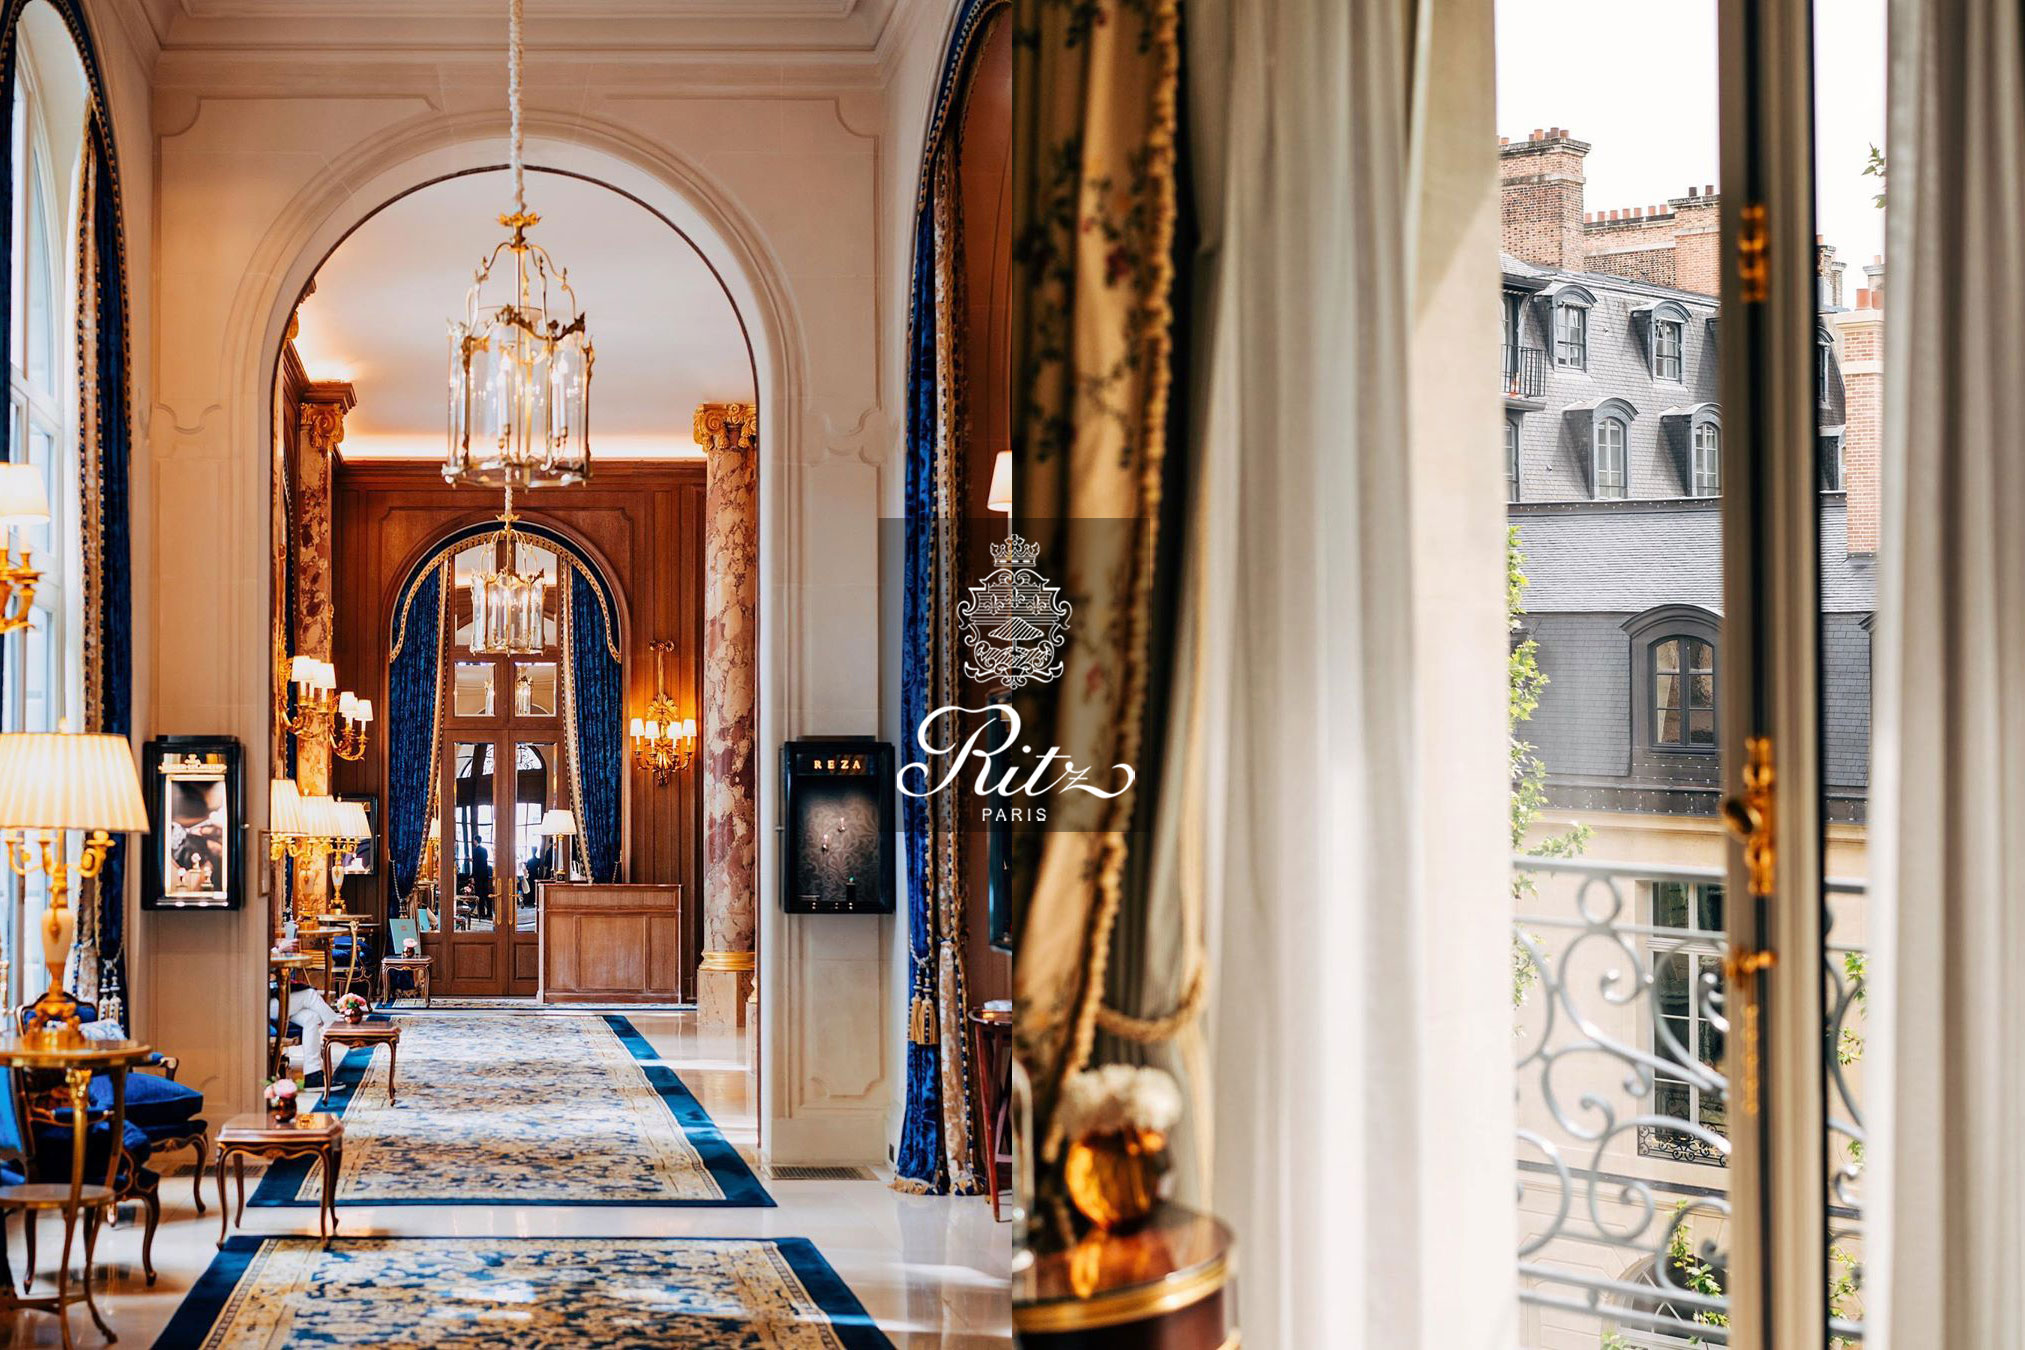 ritz-paris-hotel-travel-Joe-Thomas.jpg